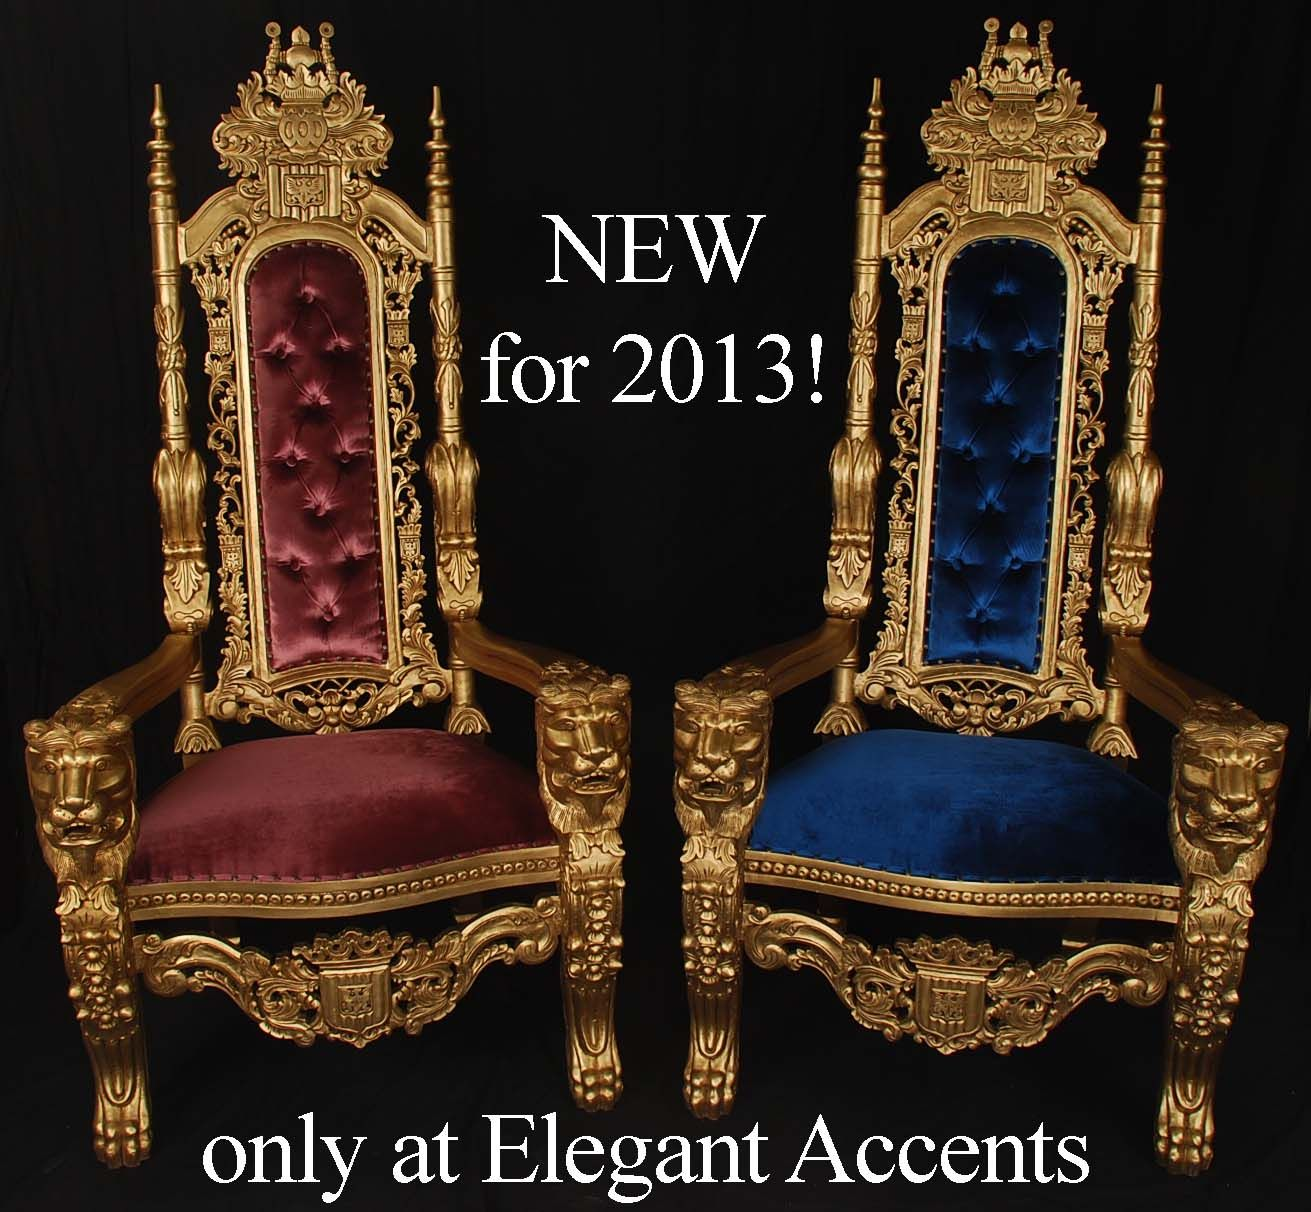 black velvet throne chair crate and barrel curran gold painted king lion chairs with purple or blue